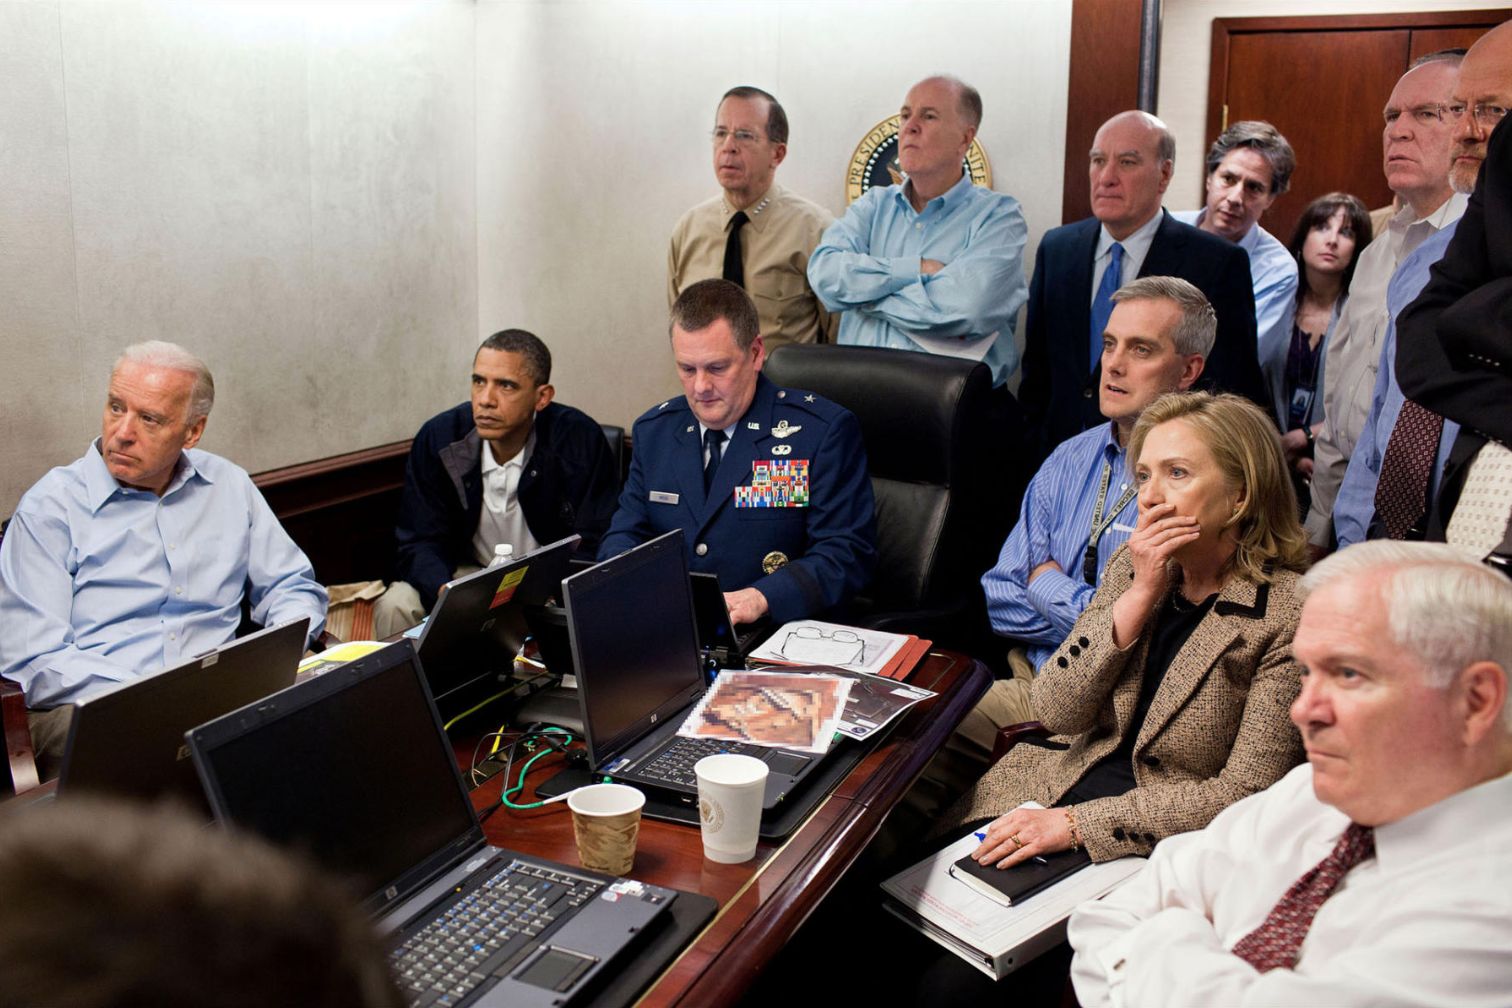 President Obama and other officials in the Situation Room overseeing the CIA-led operation resulting in Osama Bin Laden's capture in 2011 ( Image )